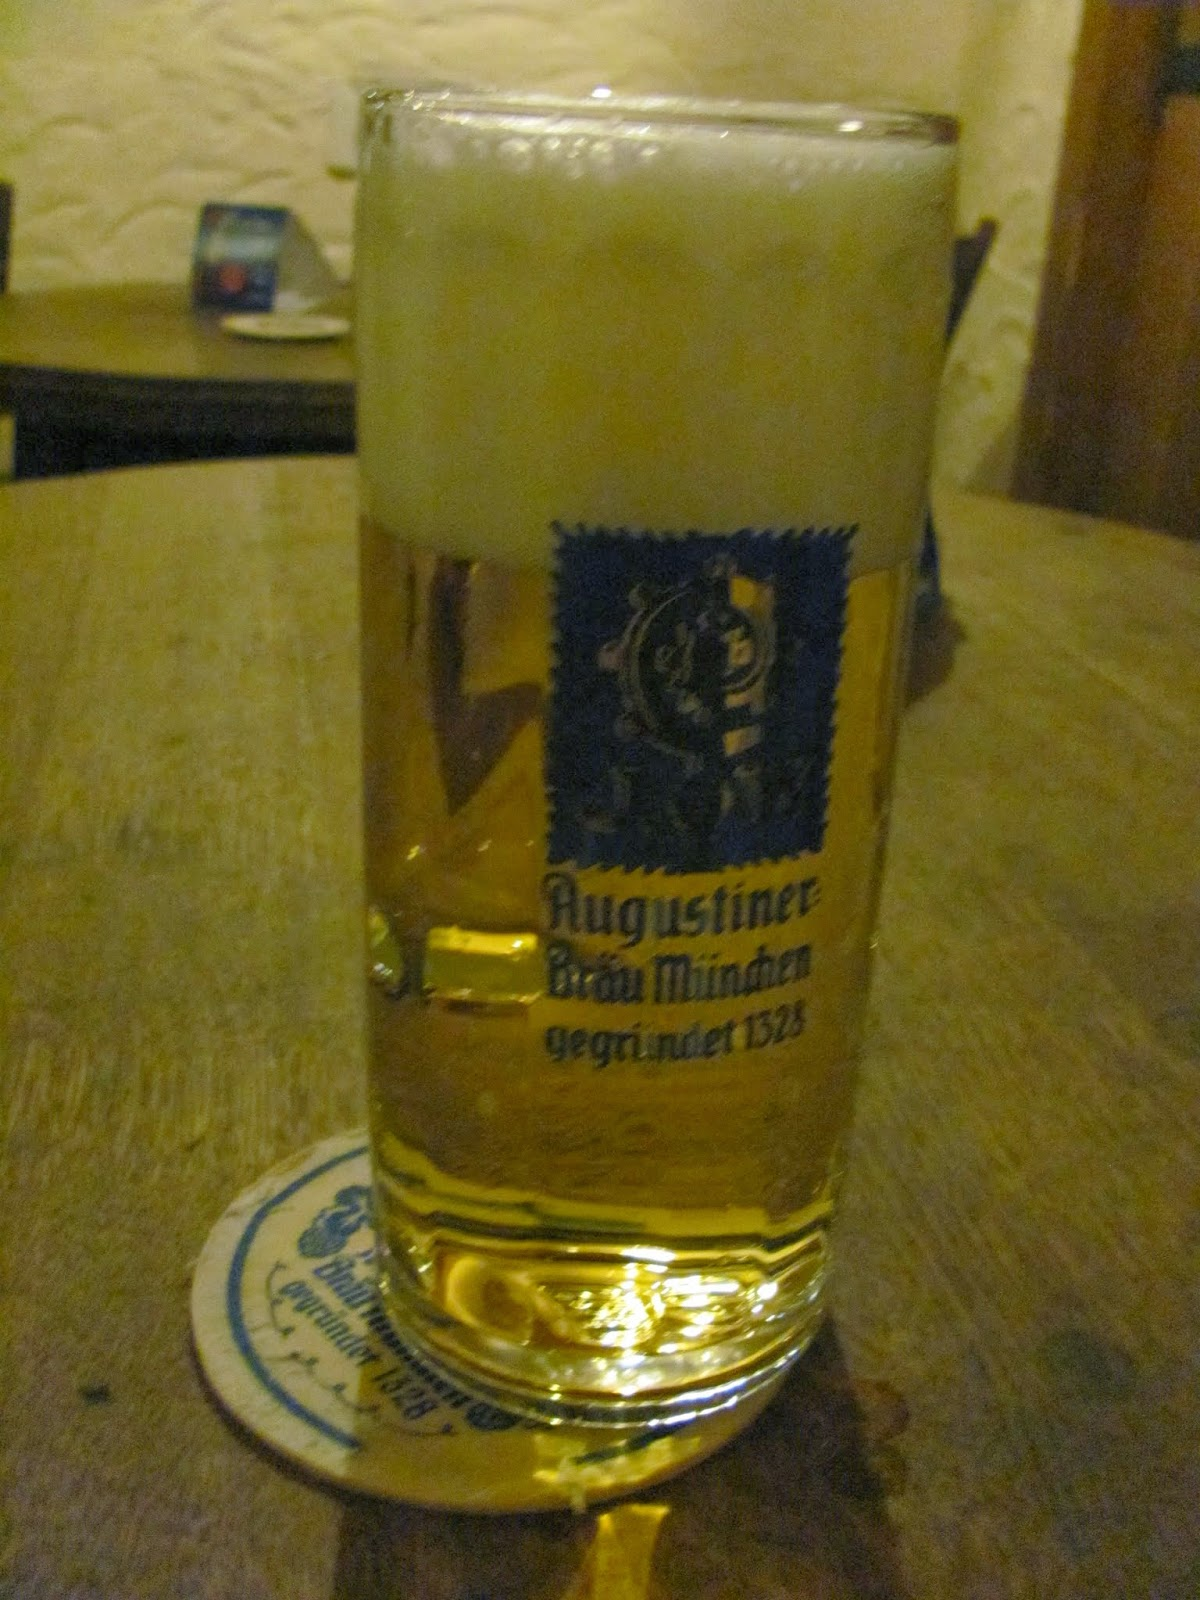 Augustiner Helles at Augustiner Beer Hall Munich, Germany